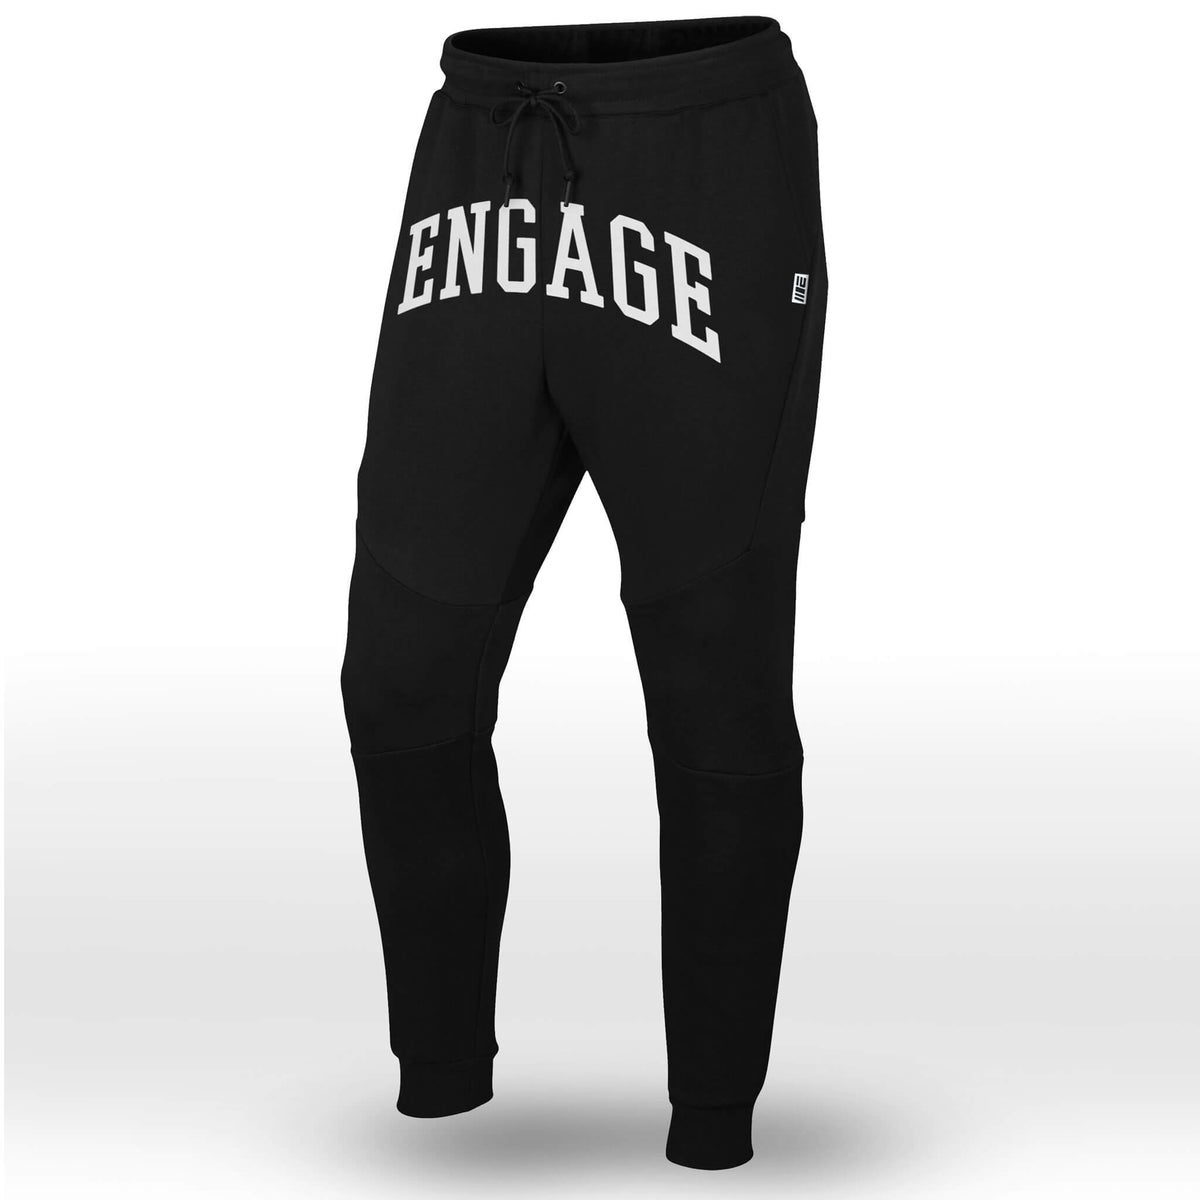 Engage Arch Sweatpant Joggers Pants Engage MMA Online Fight Store for Apparel, Fightwear and Fight Gear Equipment